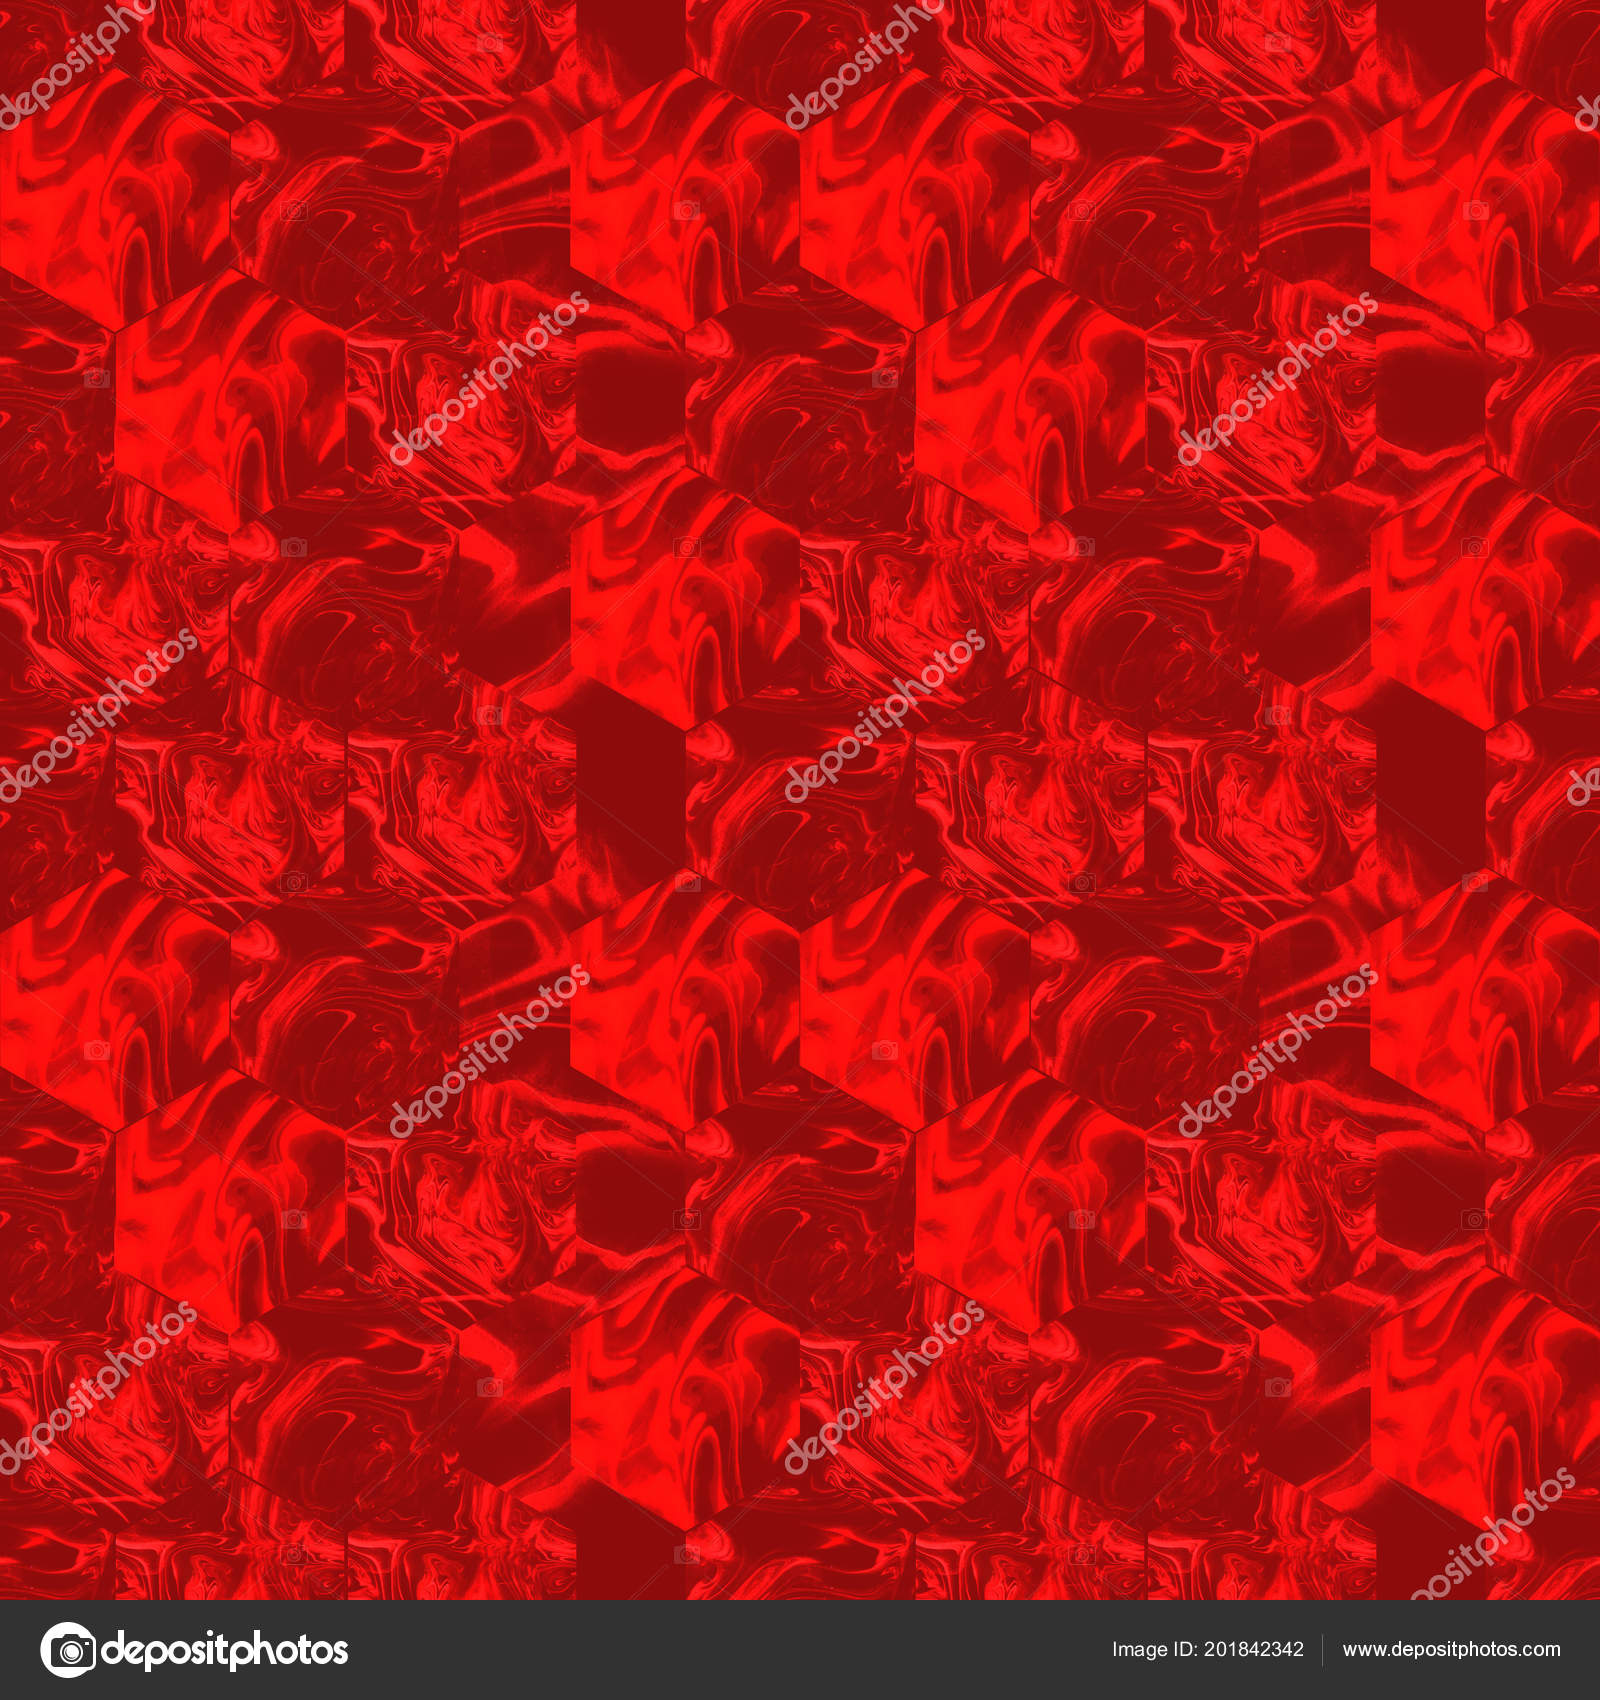 Abstract Marbling Background Texture Red Marble Stone Seamless Pattern Your Stock Photo C Bobcat 2004 Mail Ru 201842342